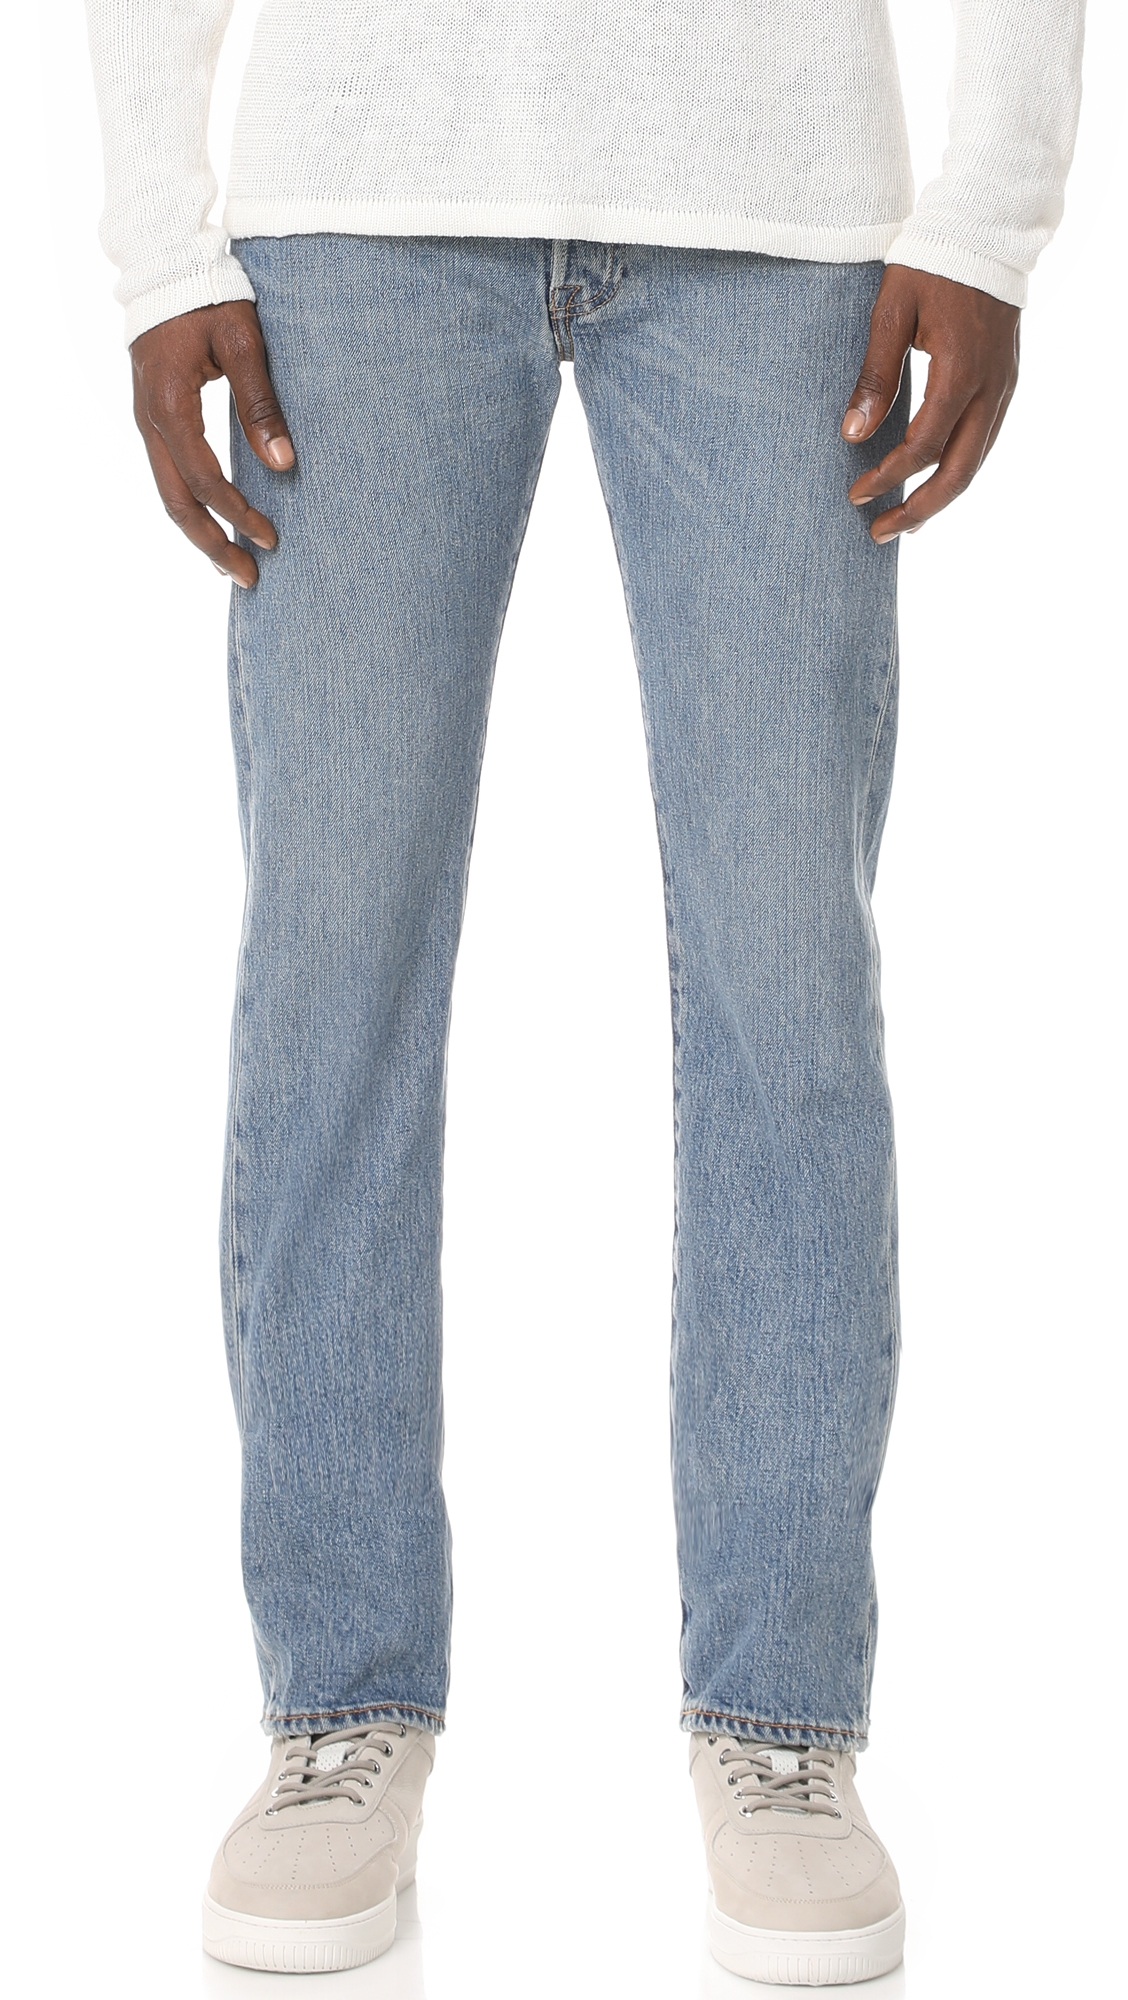 Levi's 501 Made in the USA Original Fit Jeans